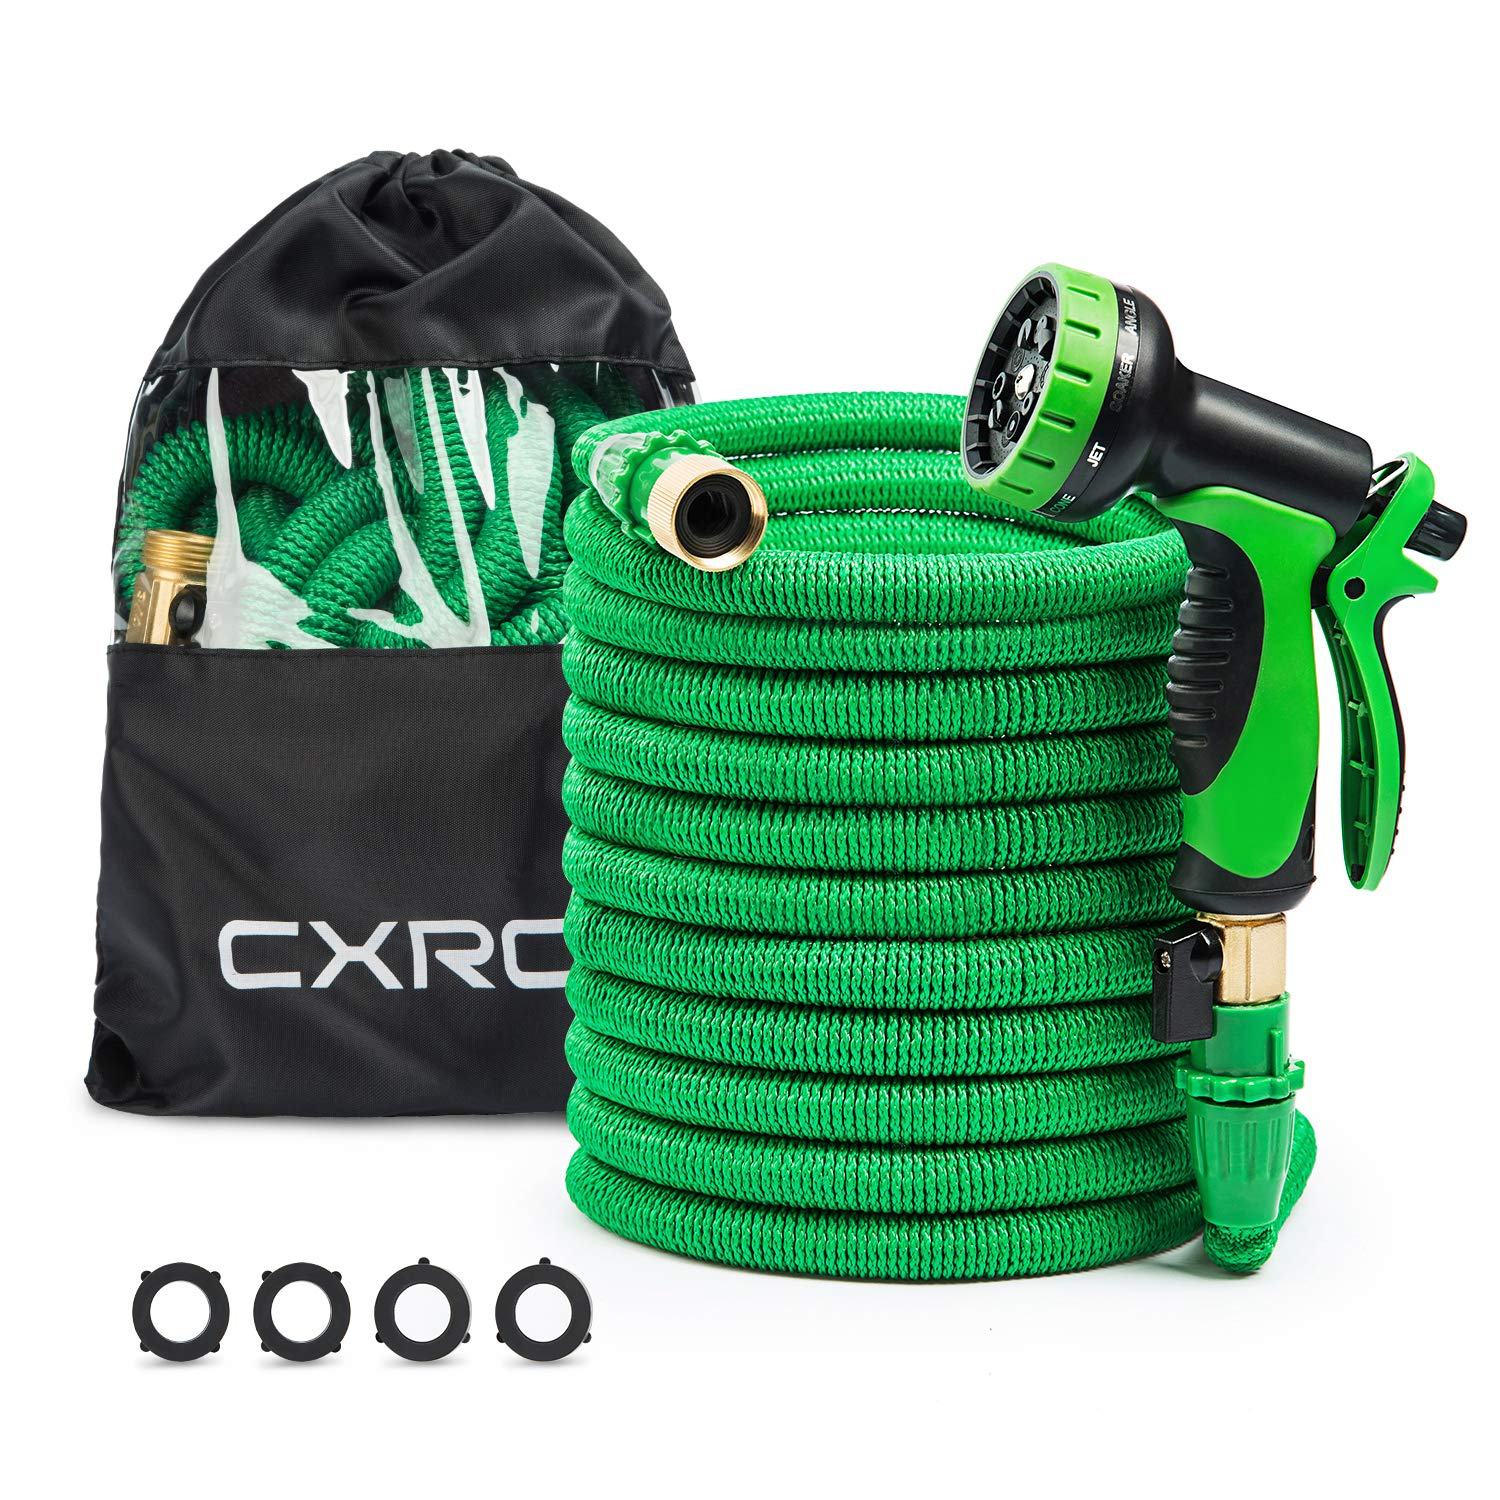 CXRCY Expandable Garden Hoses, Double Latex cores 3 Times expanded car wash Hoses, 3/4 inch Solid Brass Joints, Extra-Strength Fabrics - Flexible Expansion Metal Hose with 10 Features … (50FT) by CXRCY